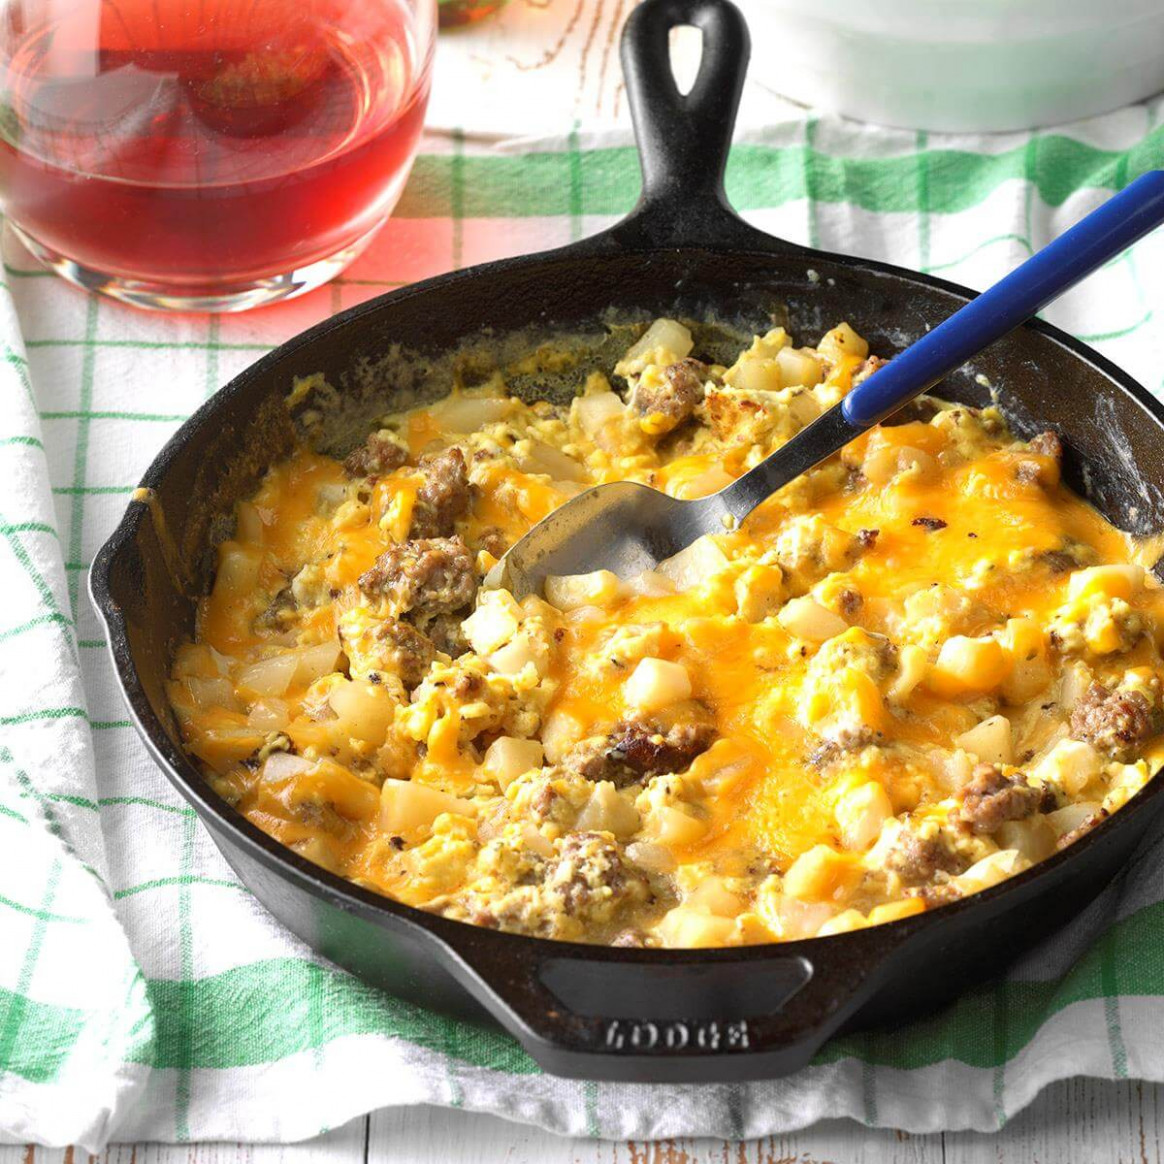 Sausage, Egg And Cheddar Farmer's Breakfast Recipe | Taste …